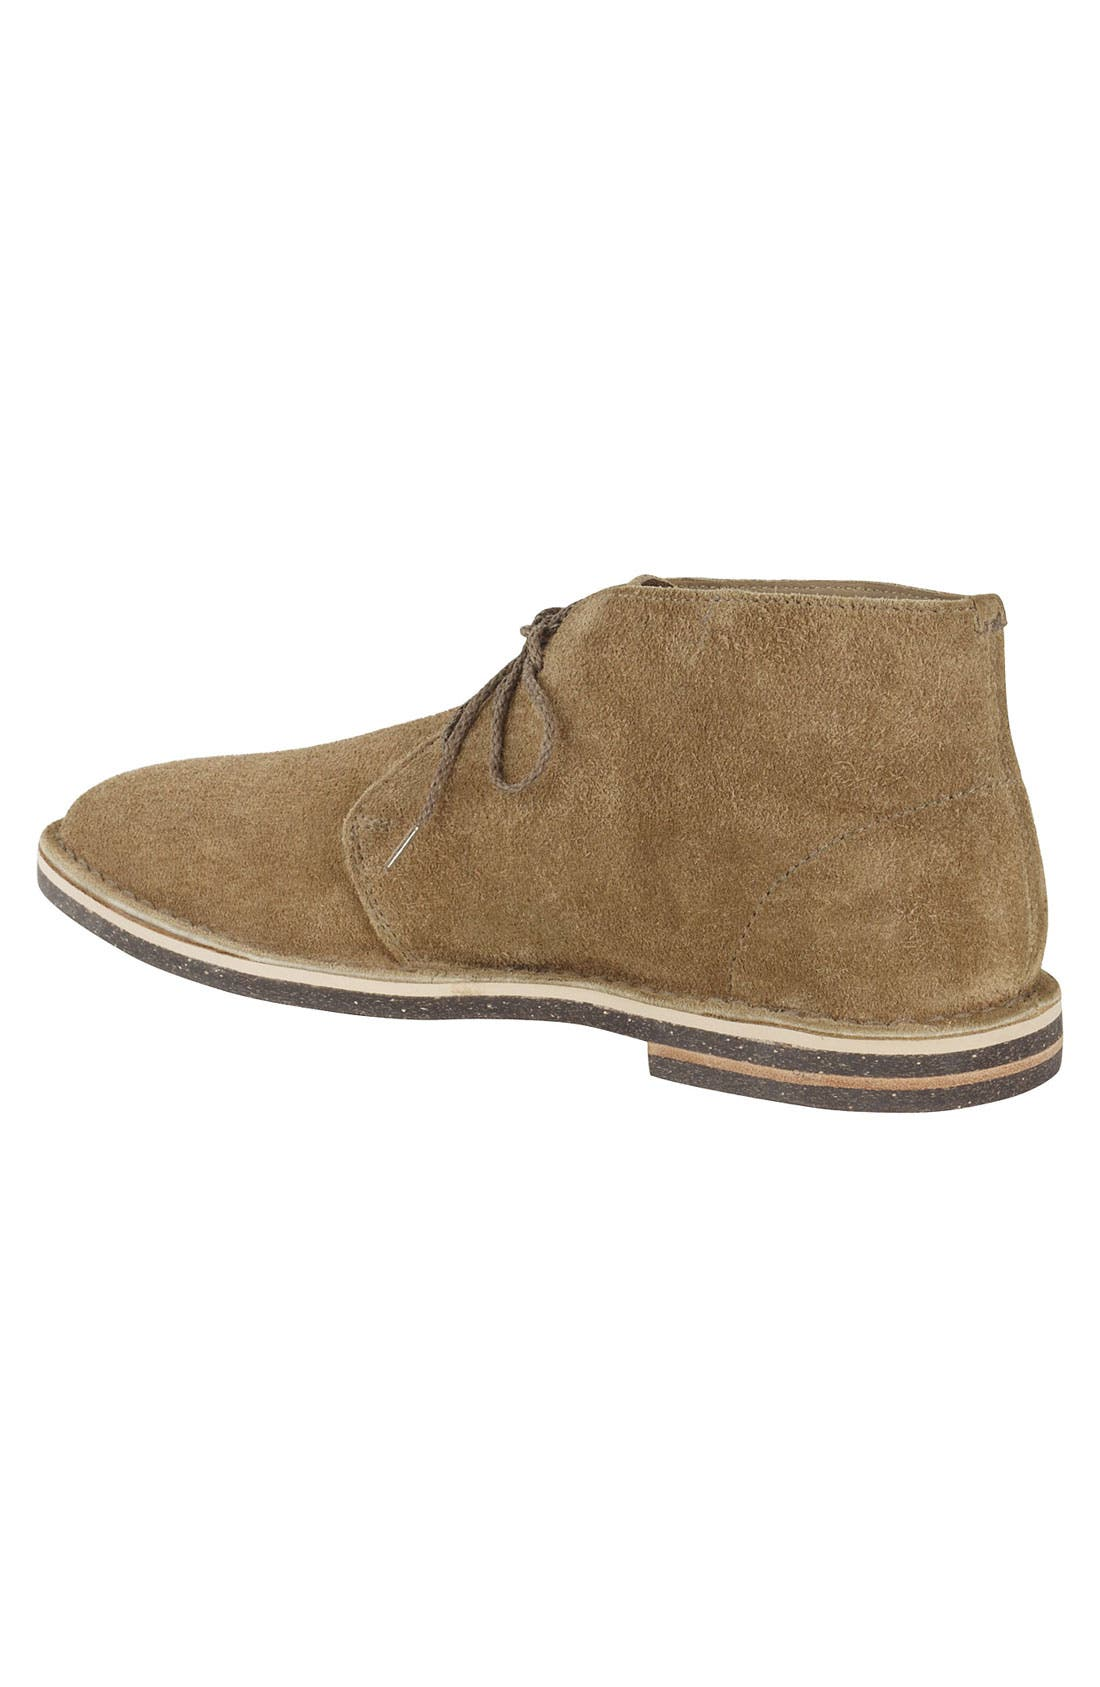 Alternate Image 2  - Cole Haan 'Paul' Winter Chukka Boot